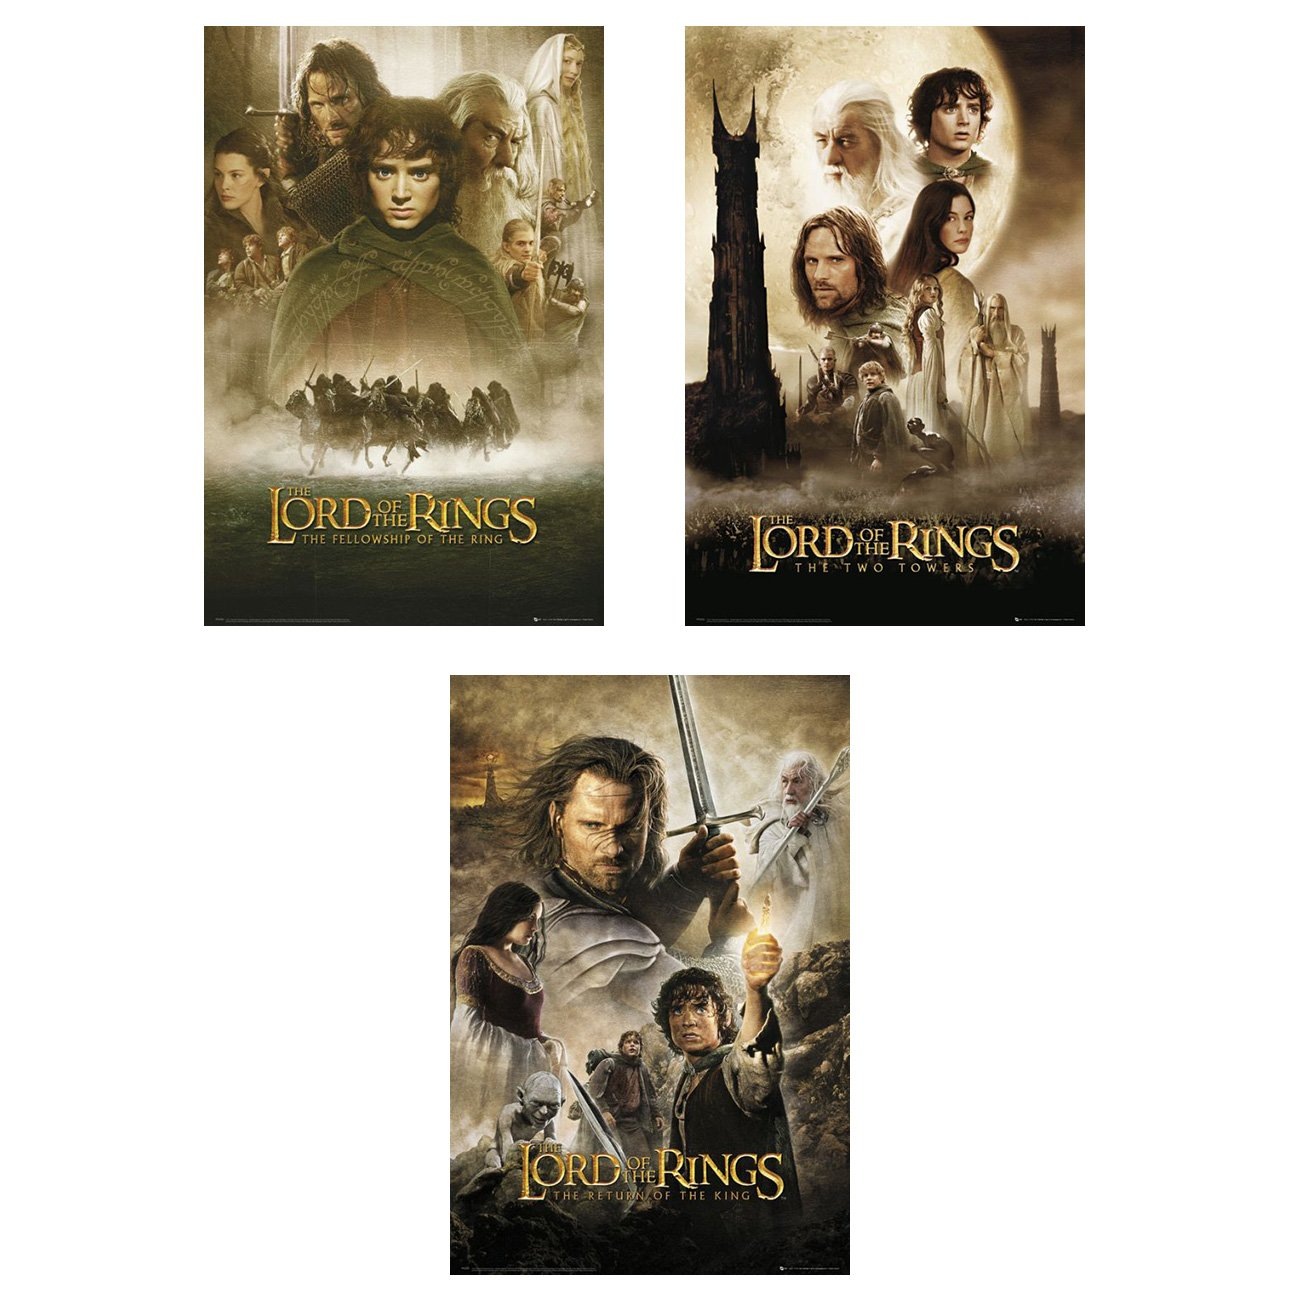 The Lord of The Rings 1, 2 & 3 - Movie Poster Set (3 Posters) (Size: 24'' x 36'')